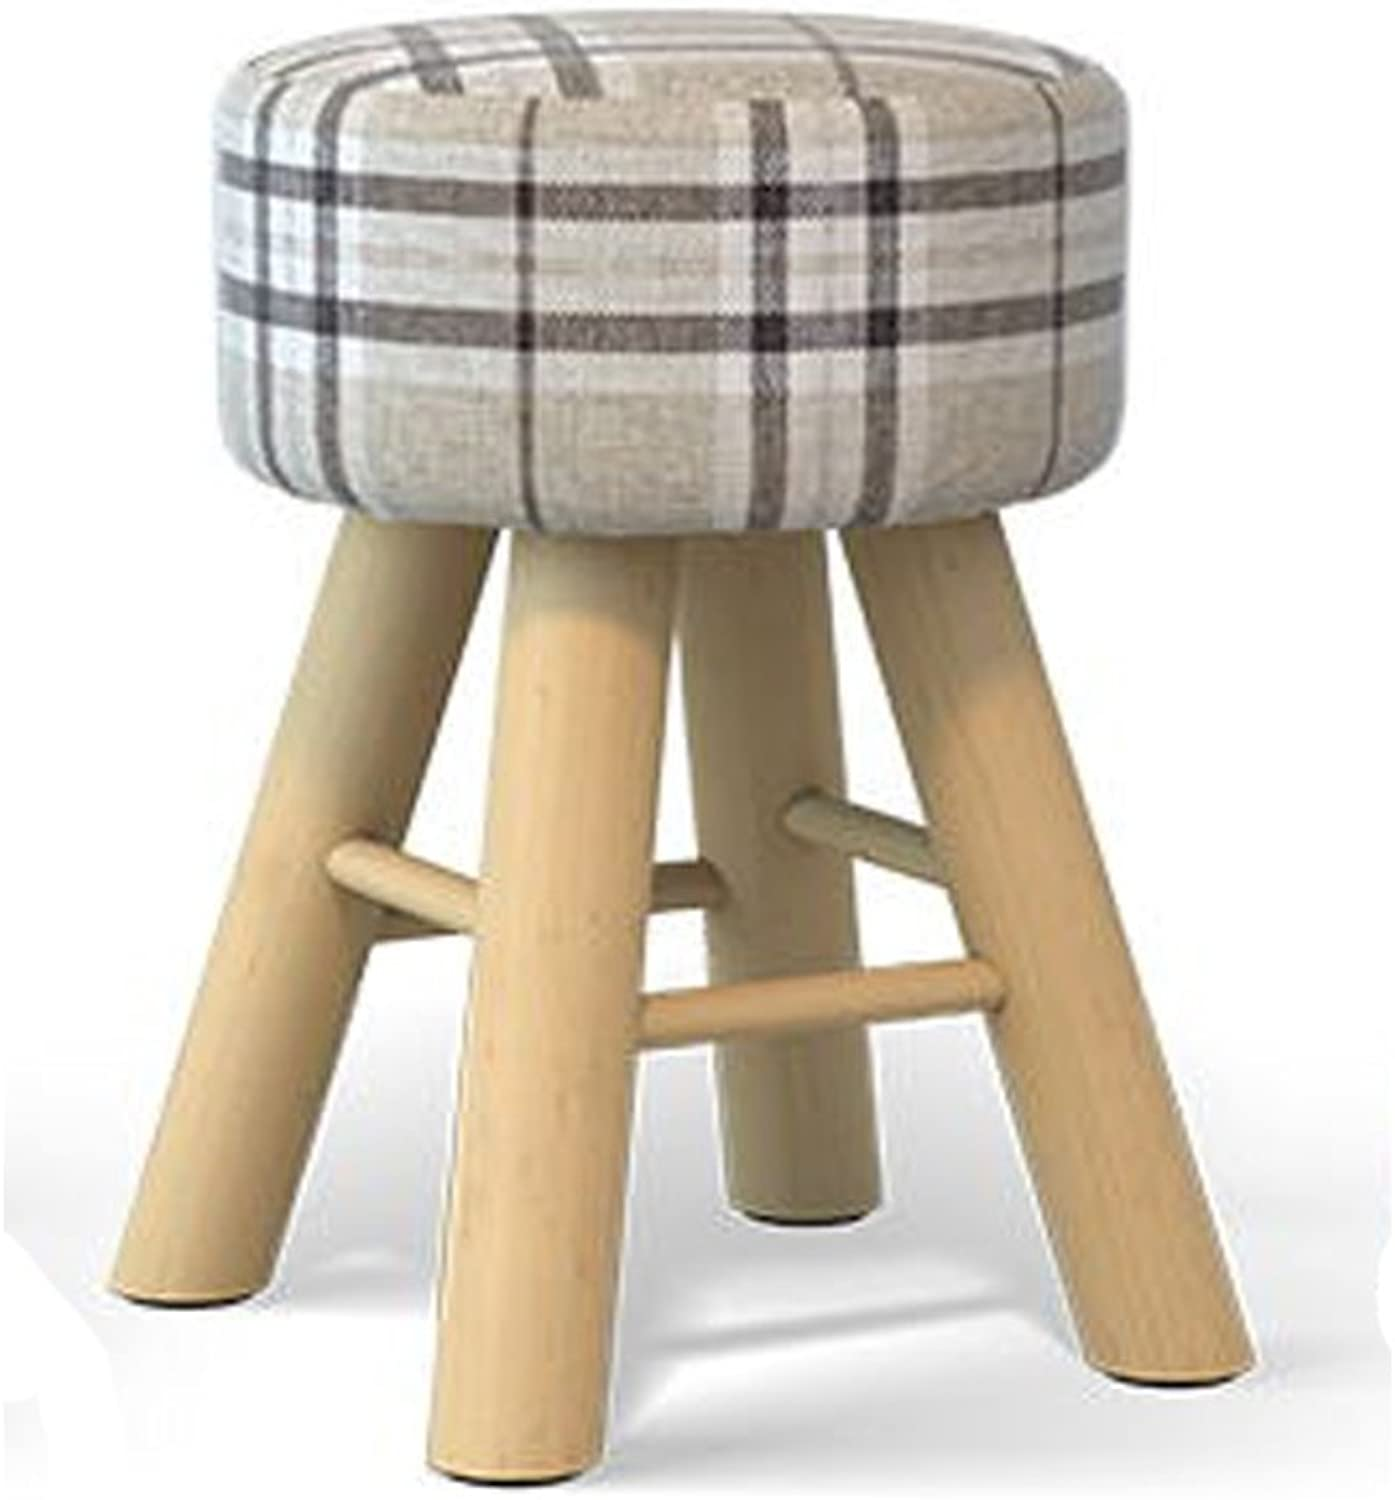 Solid Wood Stool Fabric Table Stool Fashion Creative Comb Makeup Stool Home Bench Stool Computer Stool Tables and Chairs Stool(29x42cm) 0520 (color   Multi-colord-a)